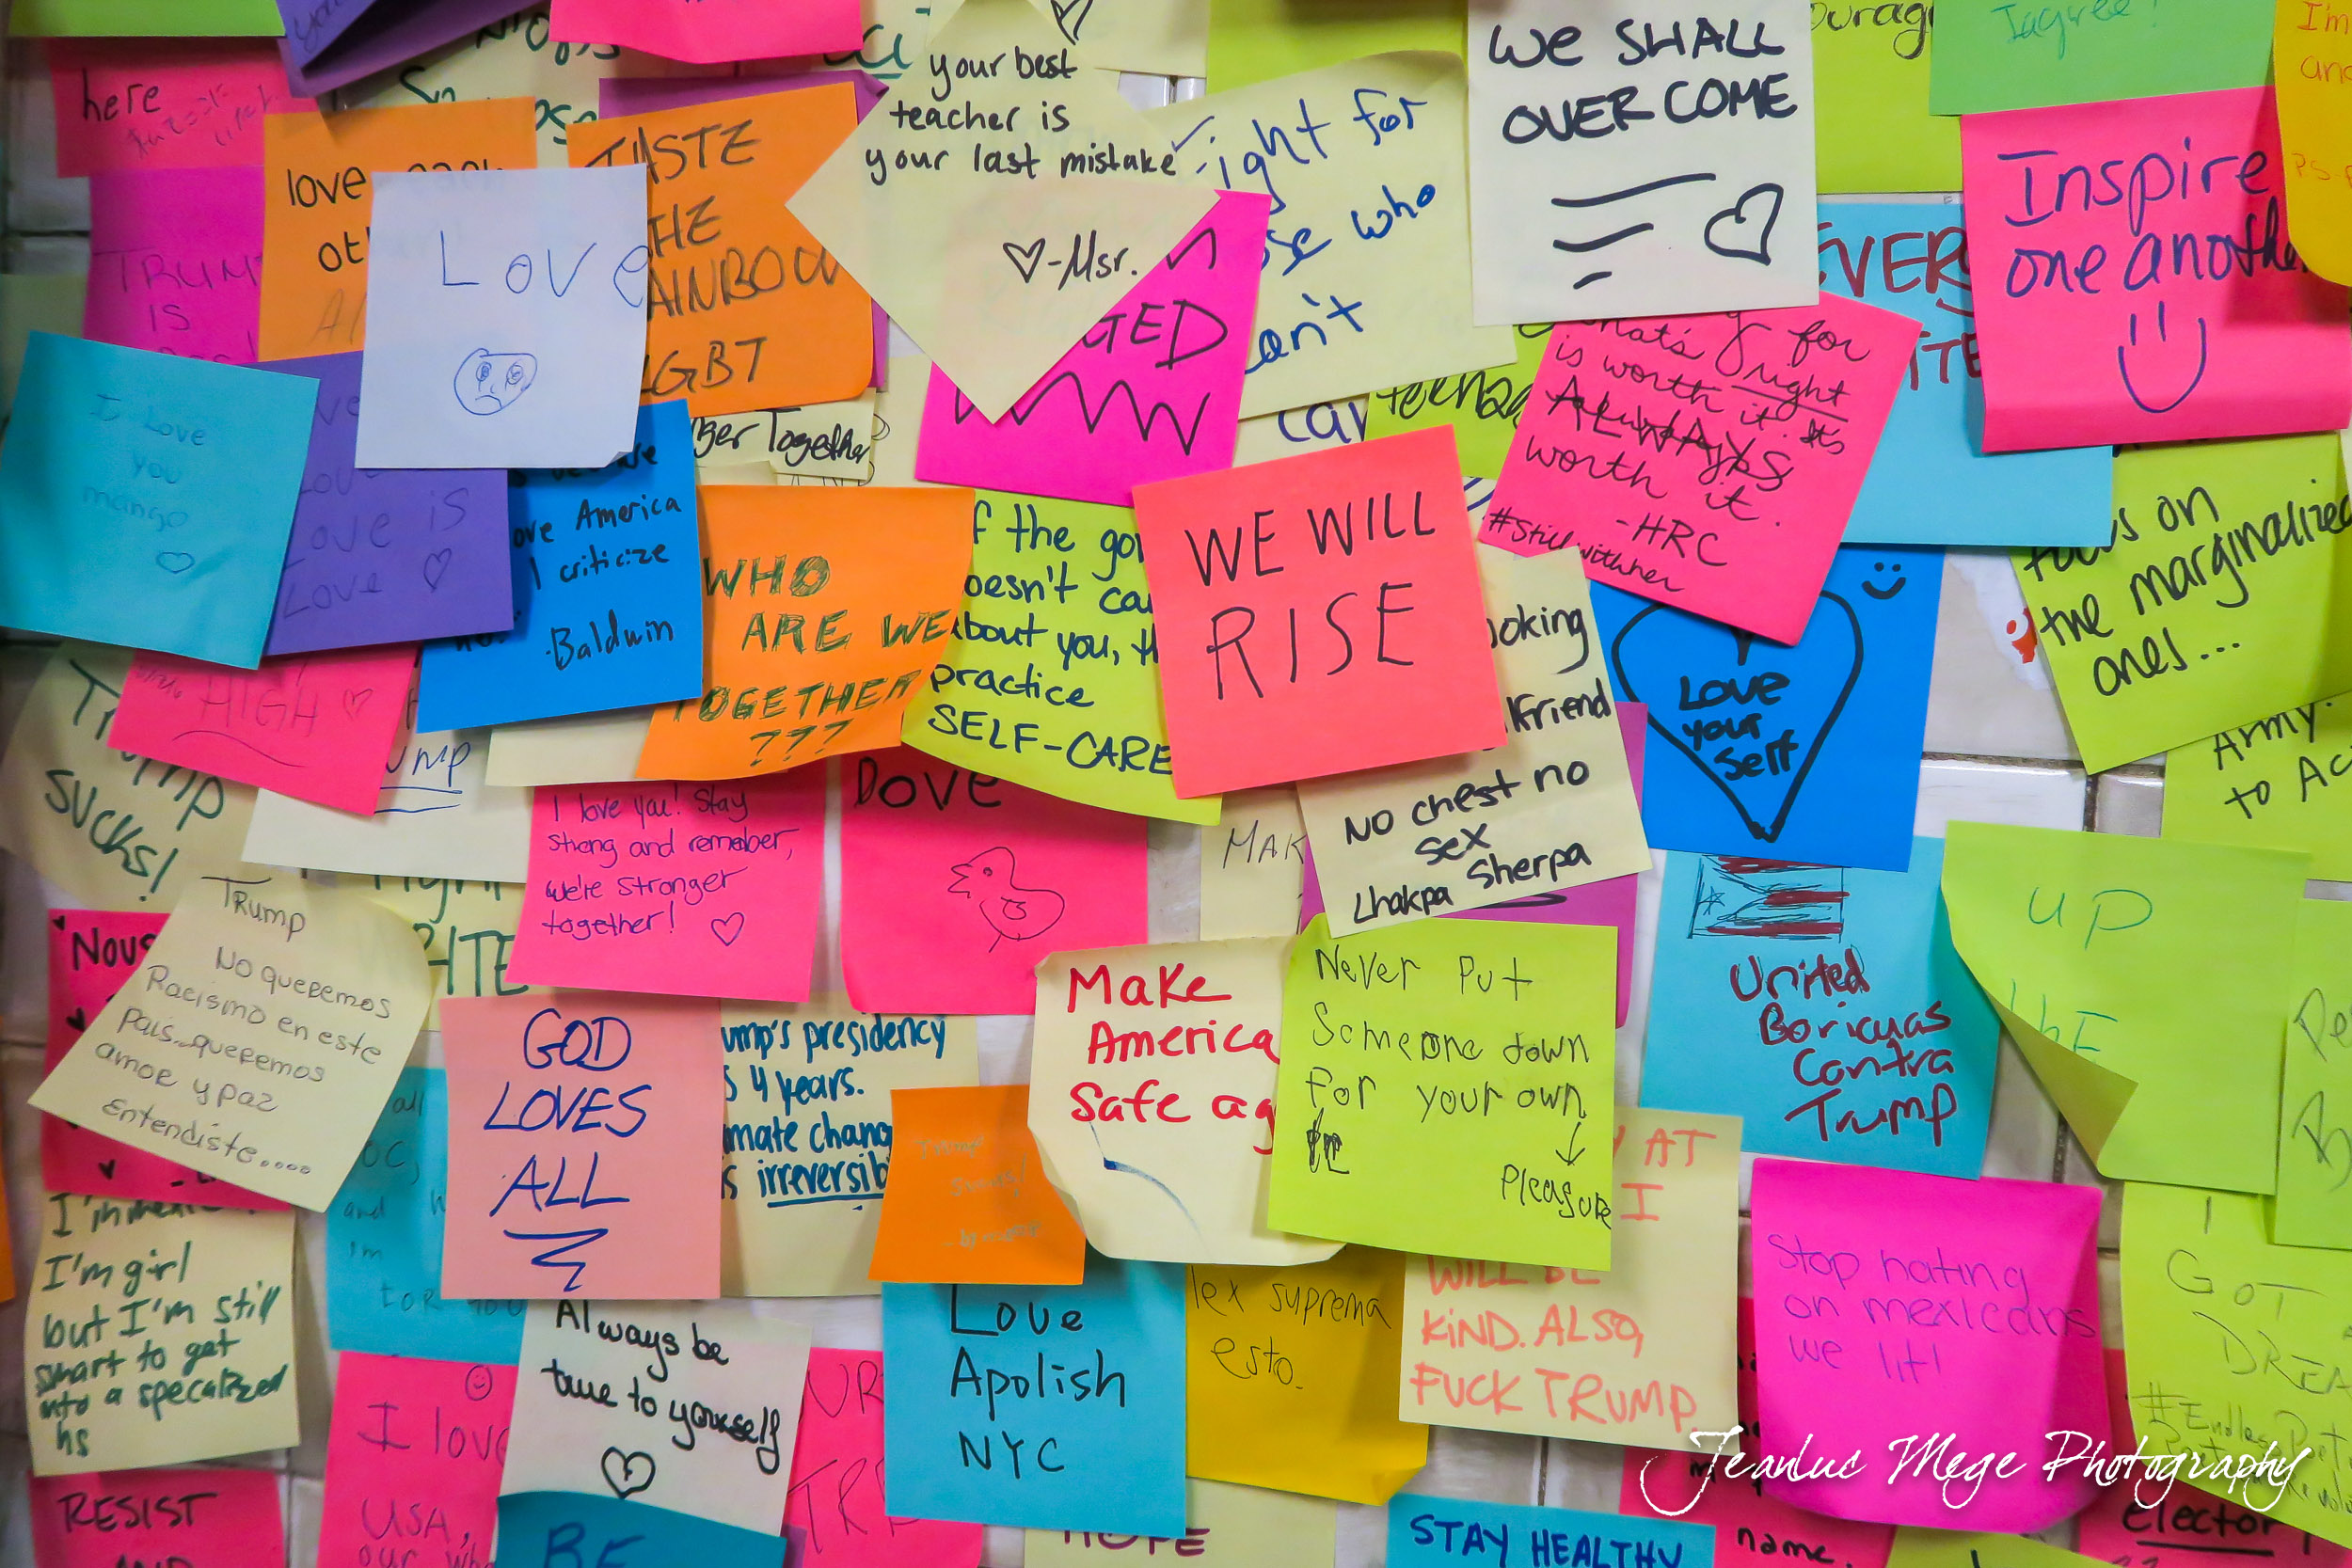 Love Wall Trump Union Square Nyc@jeanlucmege-0071.jpg